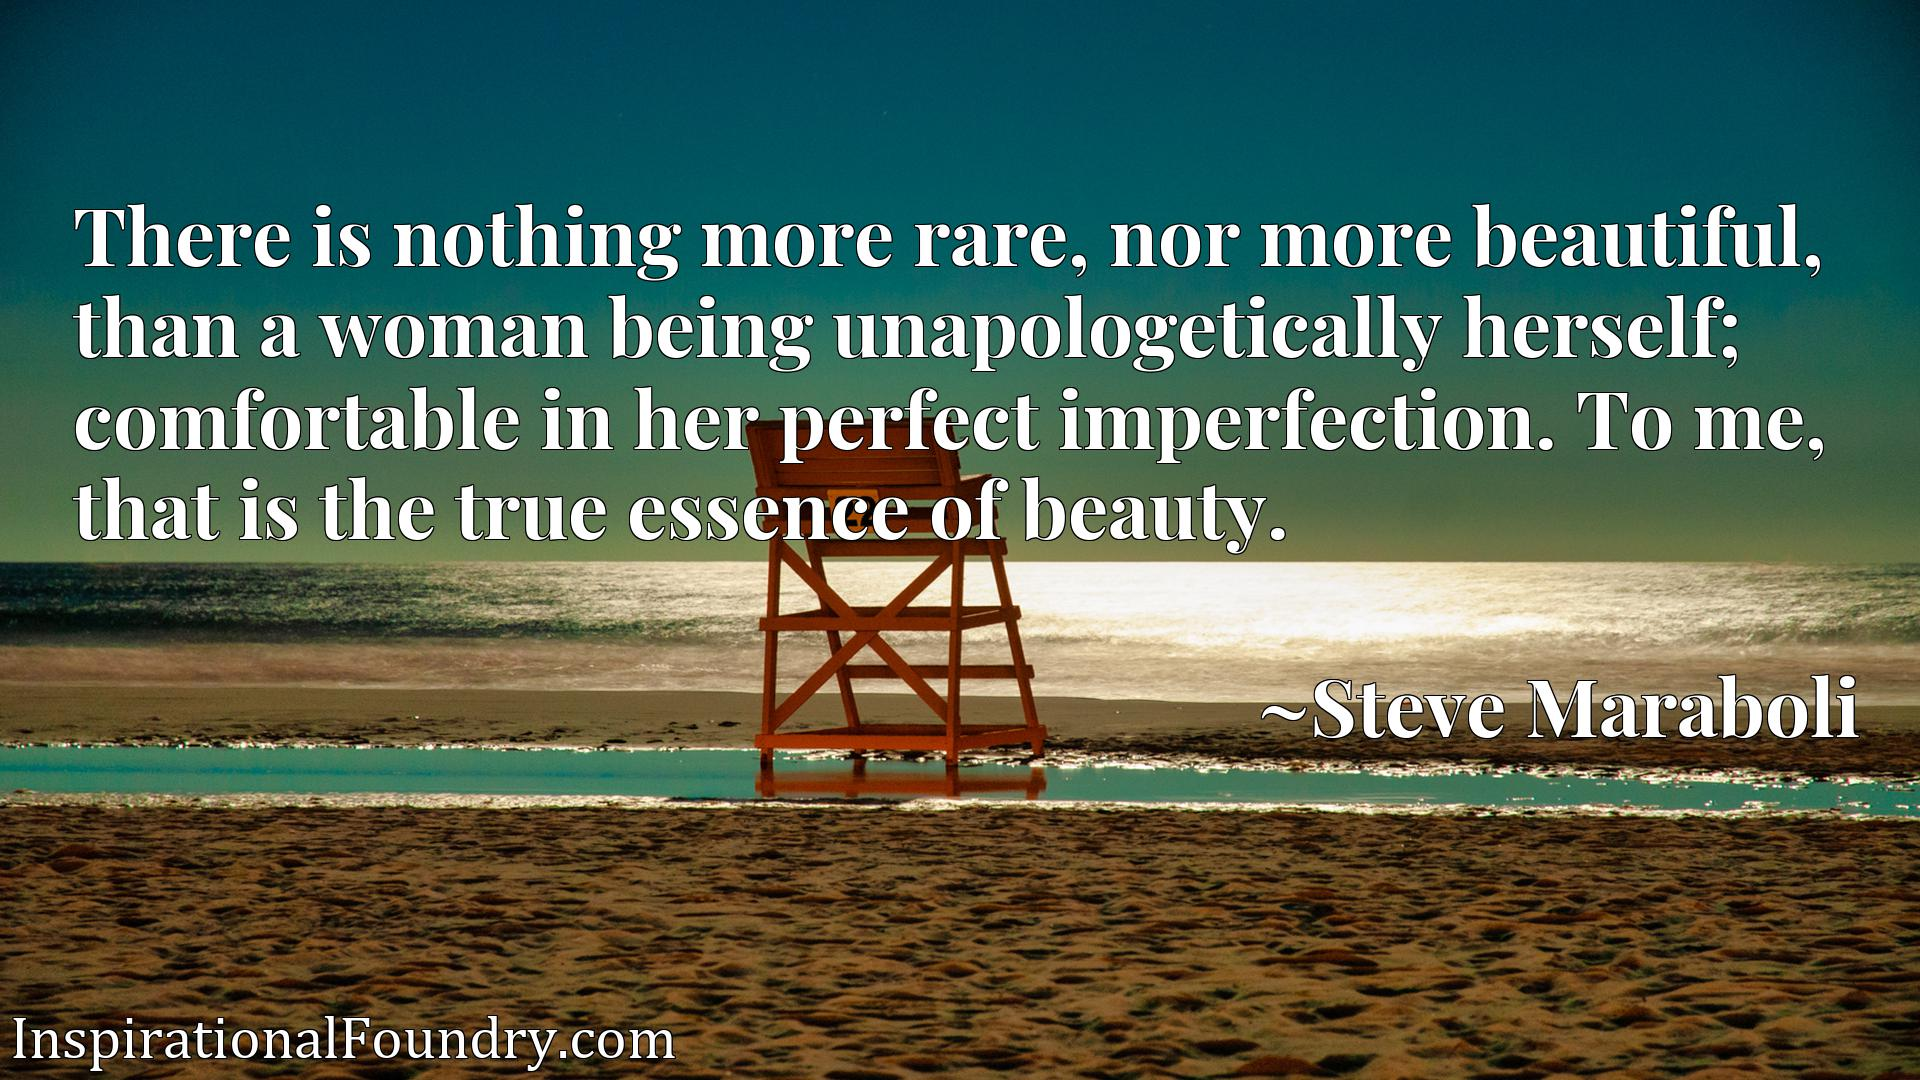 There is nothing more rare, nor more beautiful, than a woman being unapologetically herself; comfortable in her perfect imperfection. To me, that is the true essence of beauty.